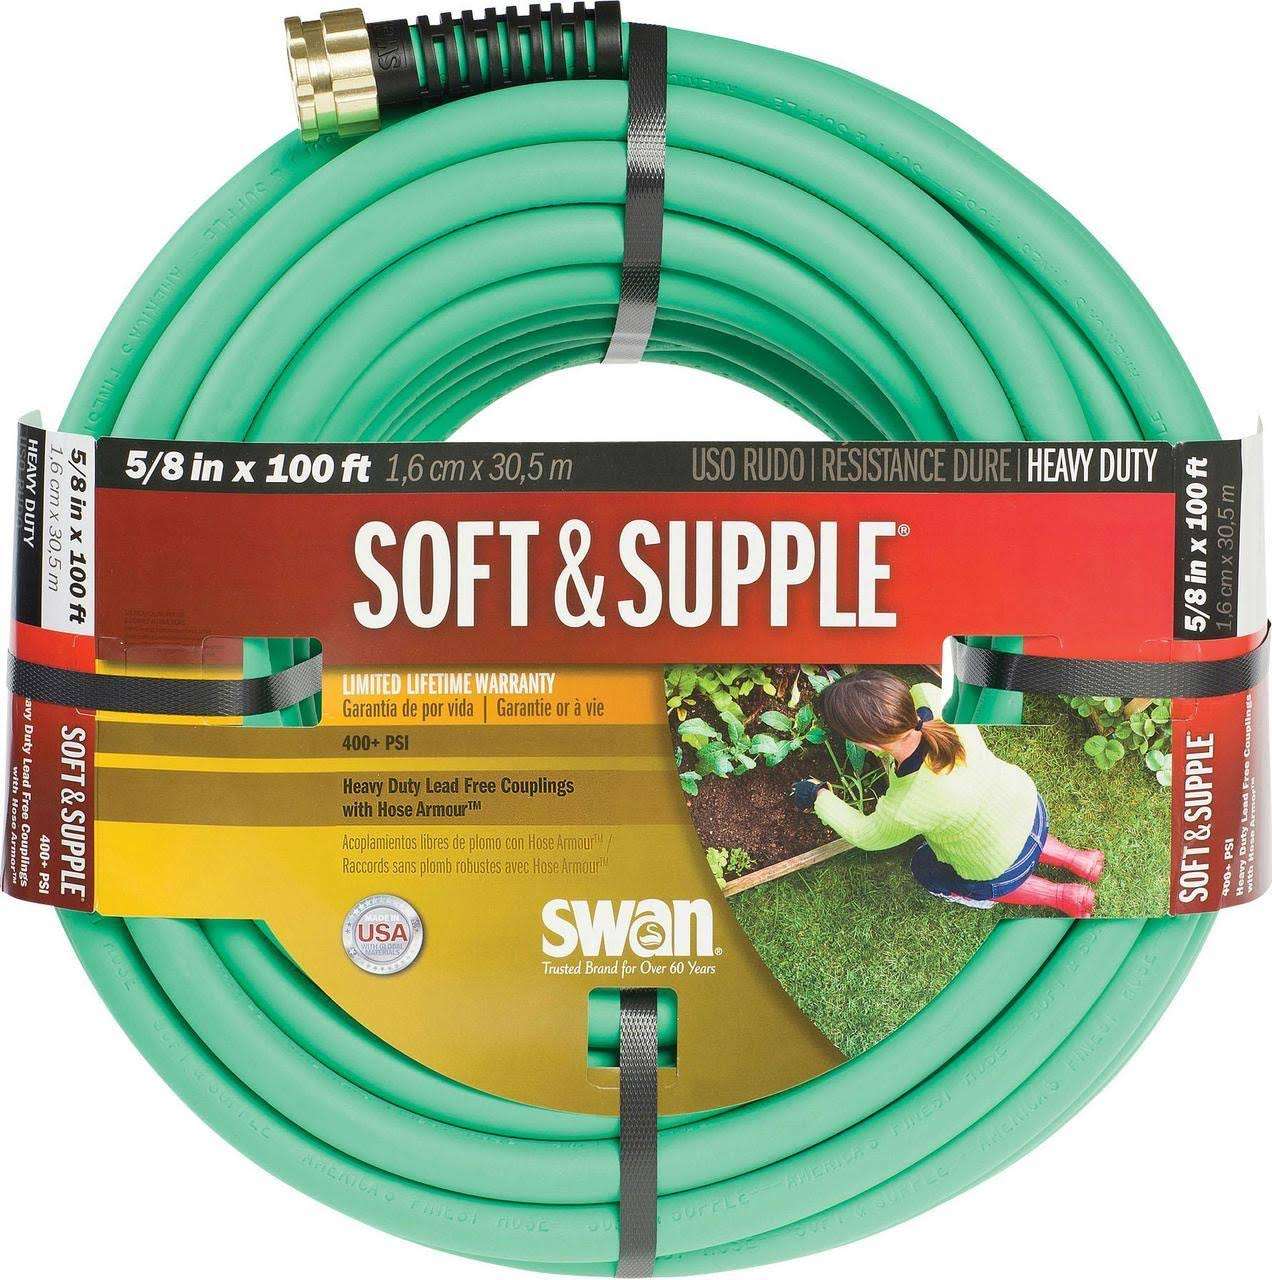 Swan Soft & Supple Premium Hose - Green, 100ft, 5.8in